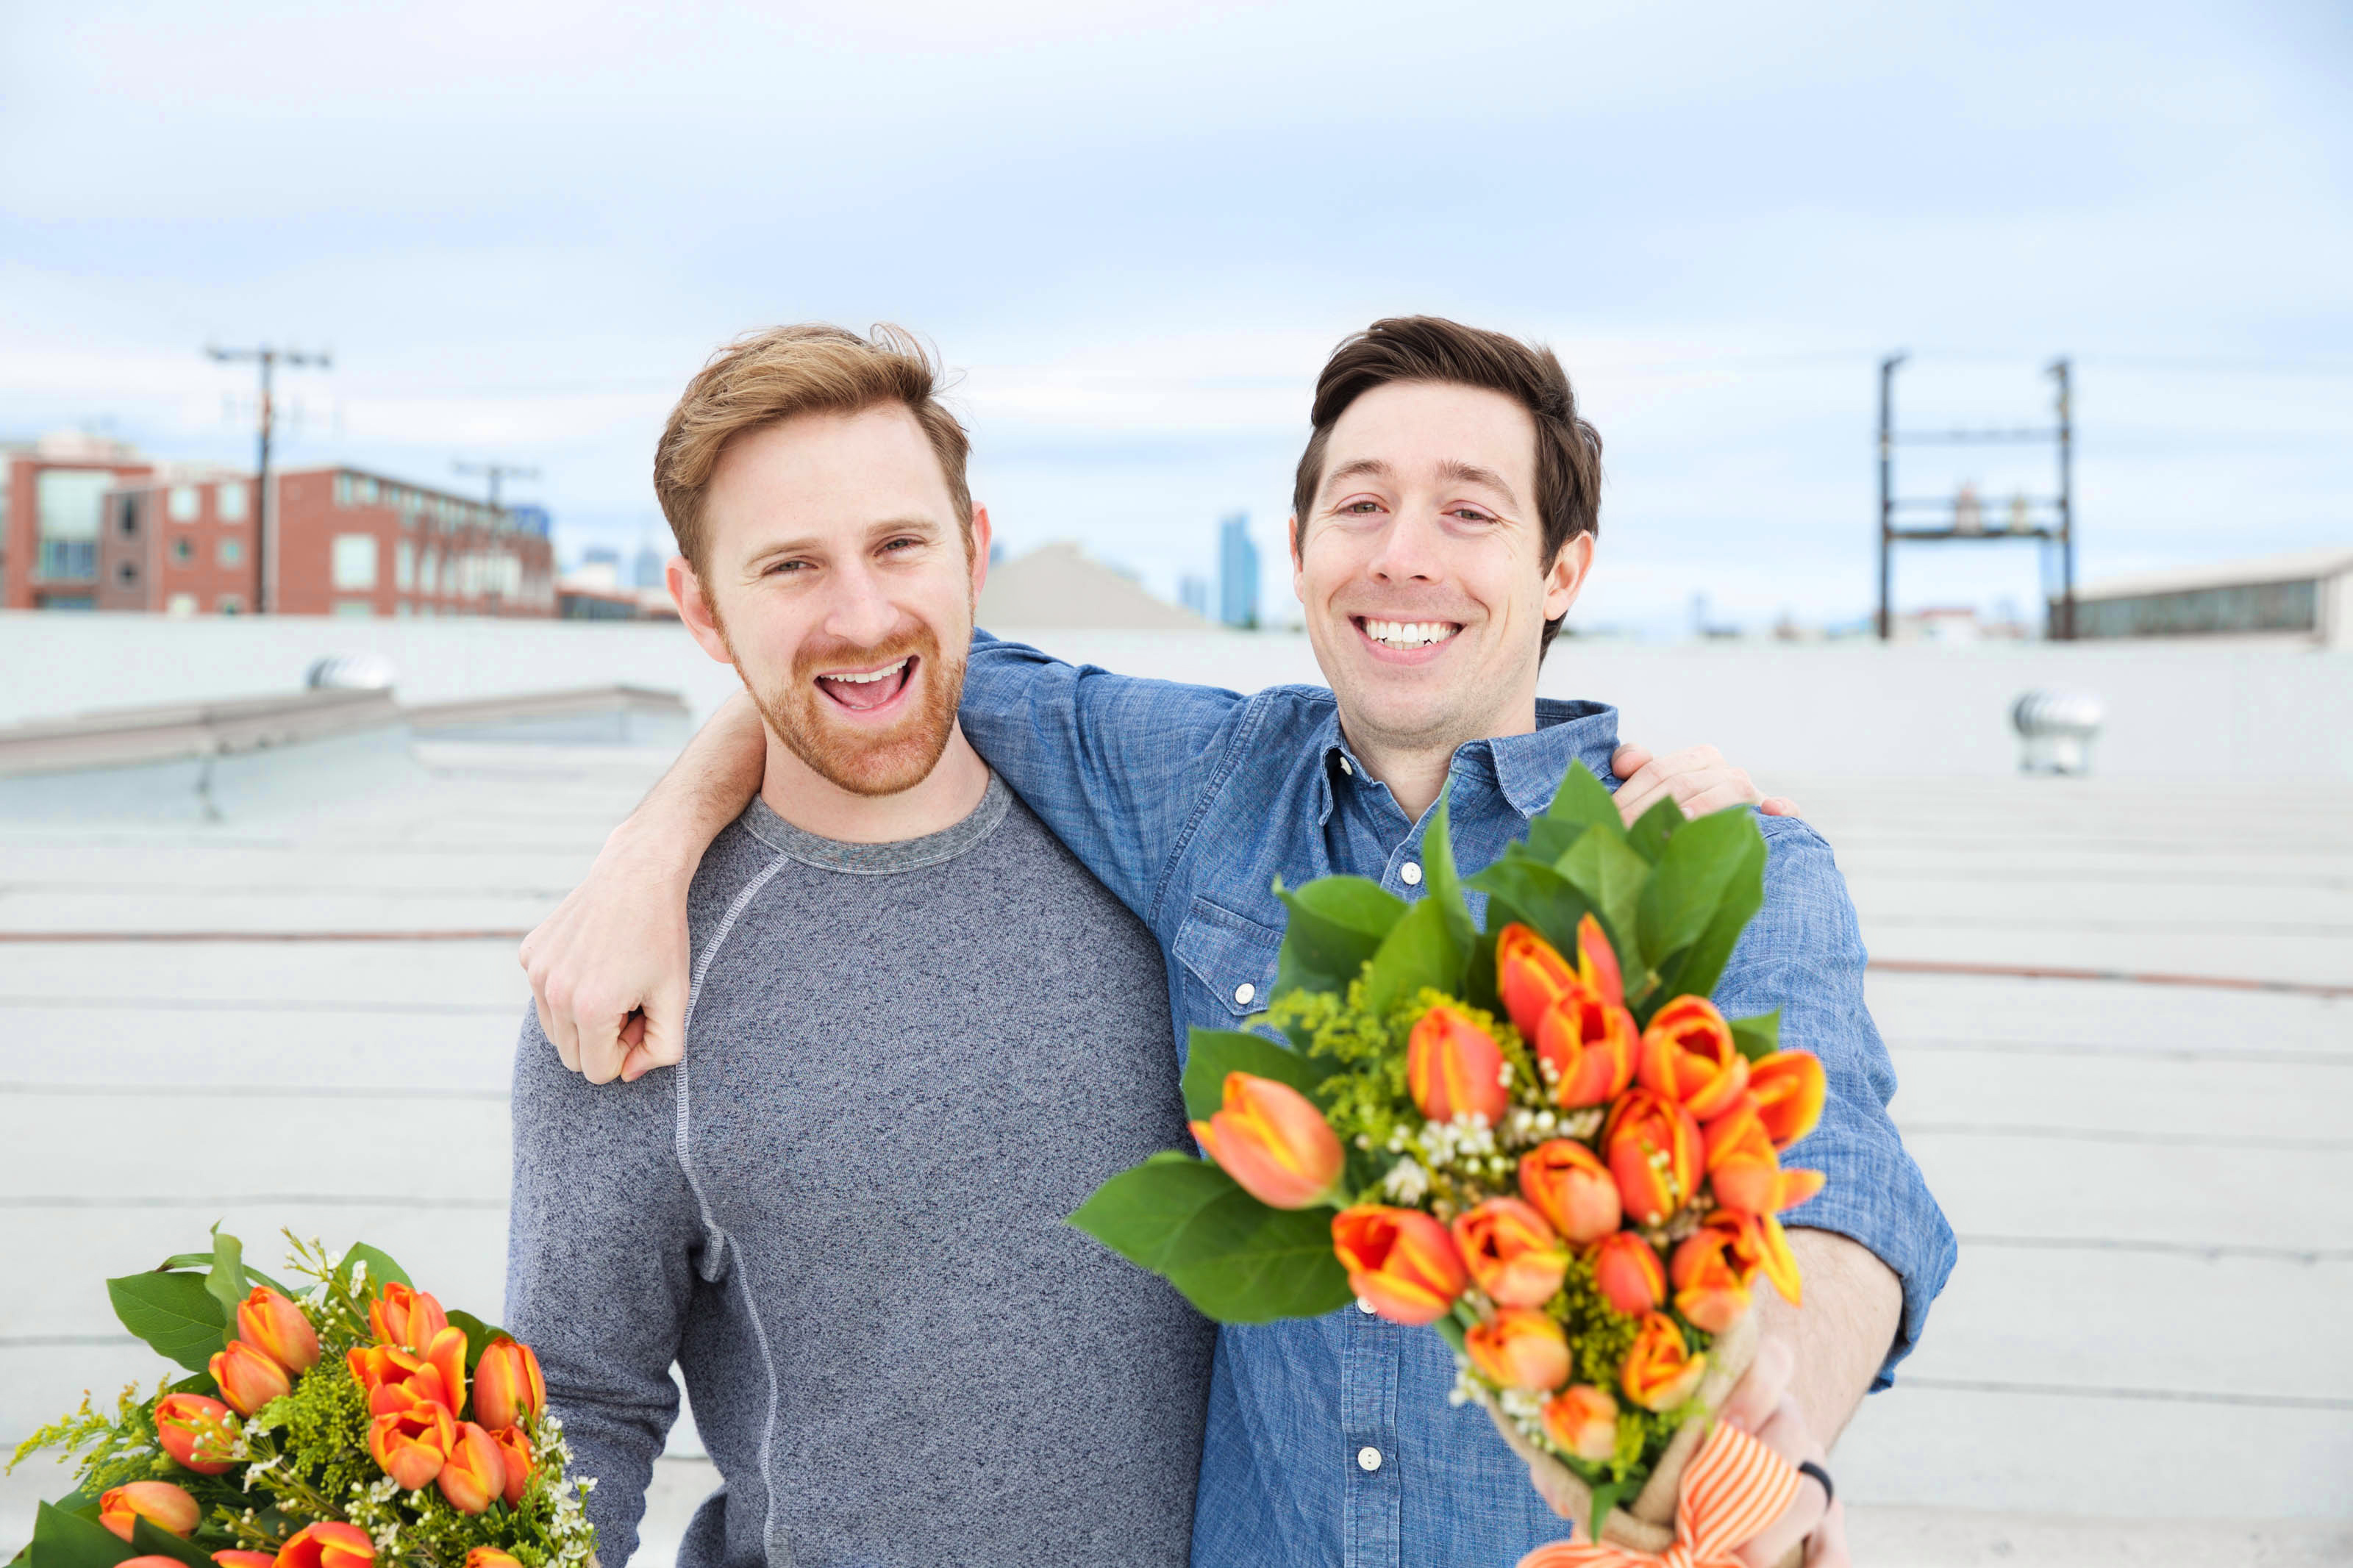 A flower giant has reportedly acquired BloomThat, an on-demand flower startup